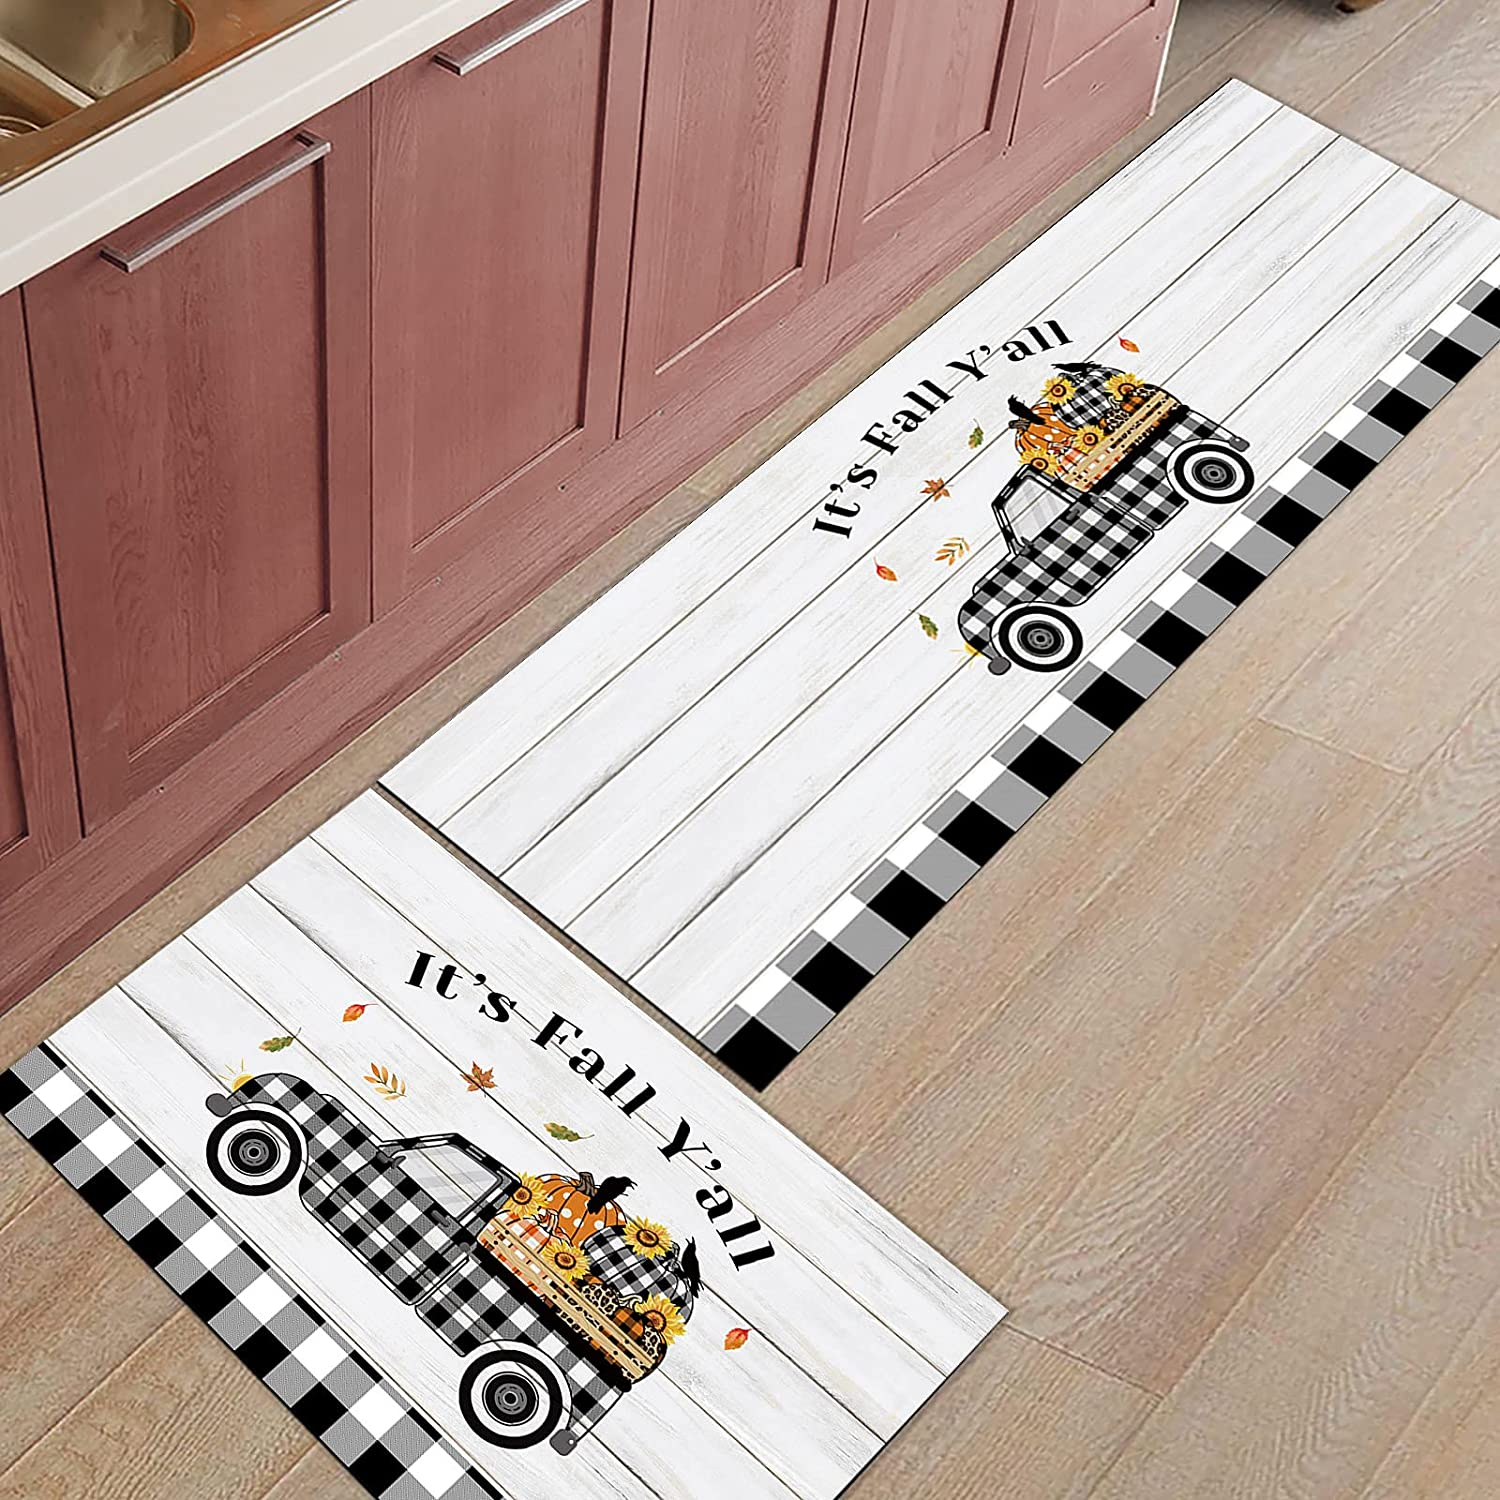 Kitchen Runner Max 49% OFF Rug Carpet 2 Piece Set shipfree It's Y' Fall Thanksgiving